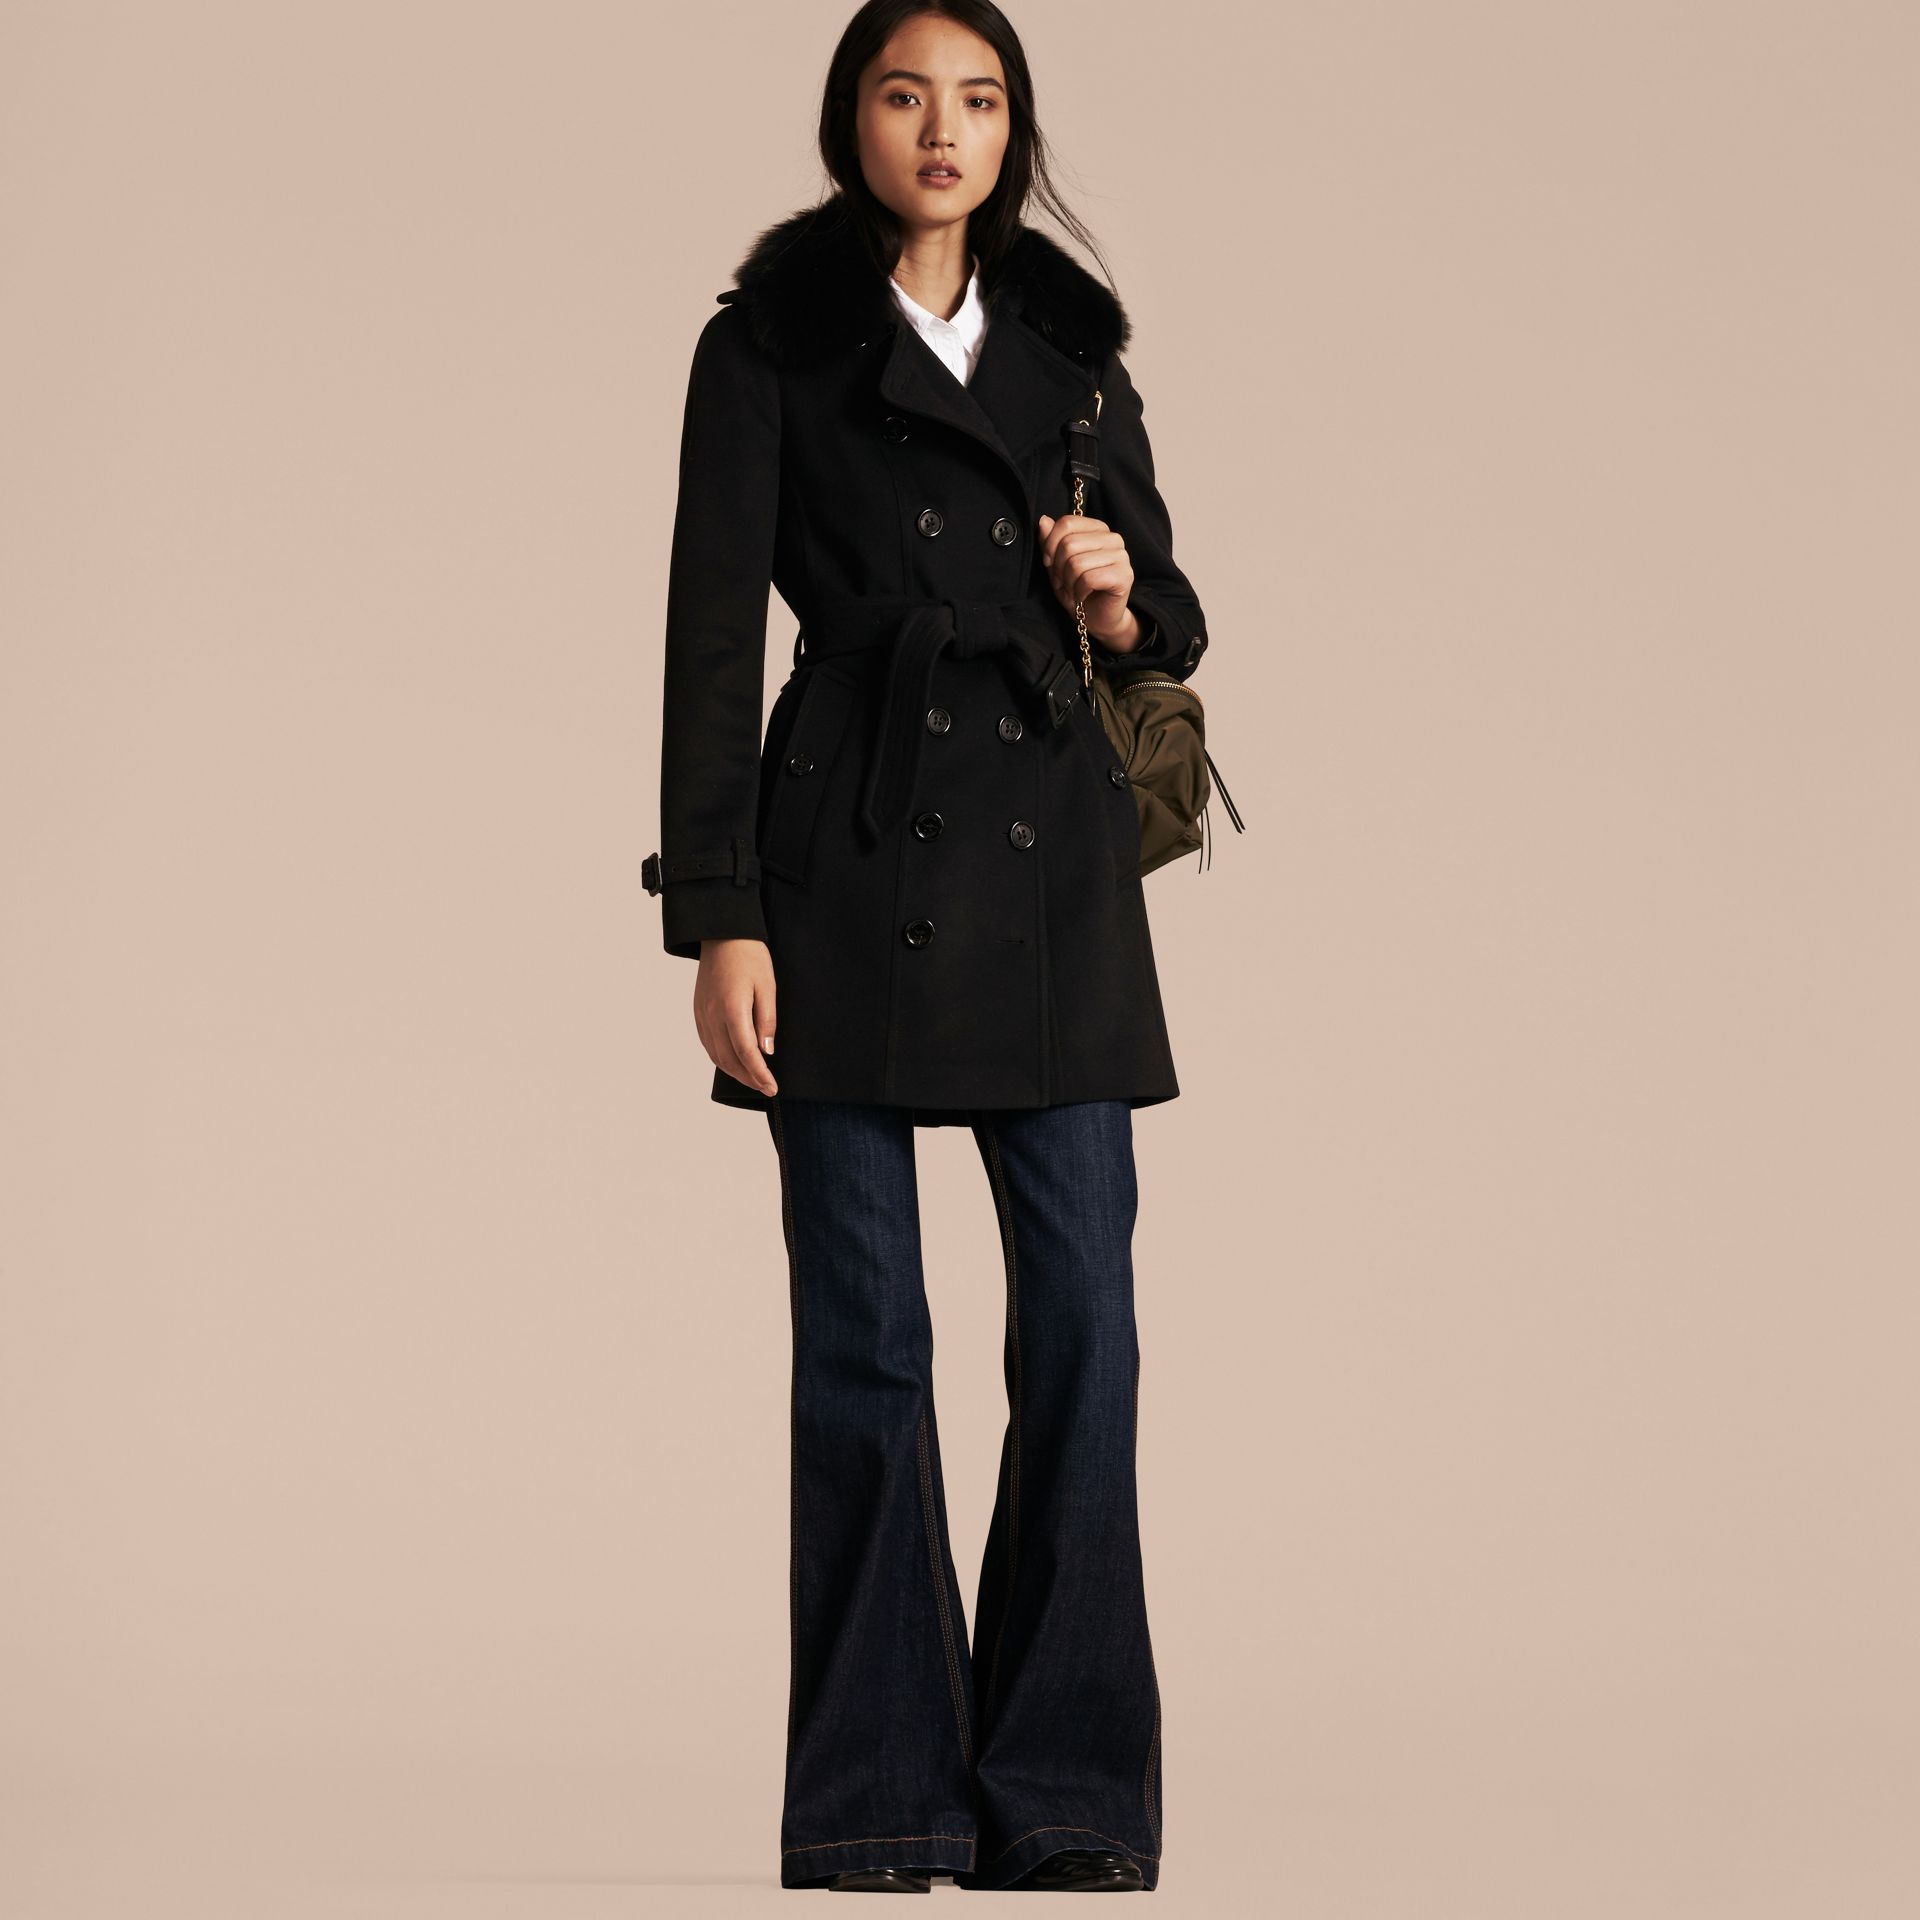 Wool Cashmere Trench Coat with Fur Collar in Black - Women | Burberry - gallery image 1